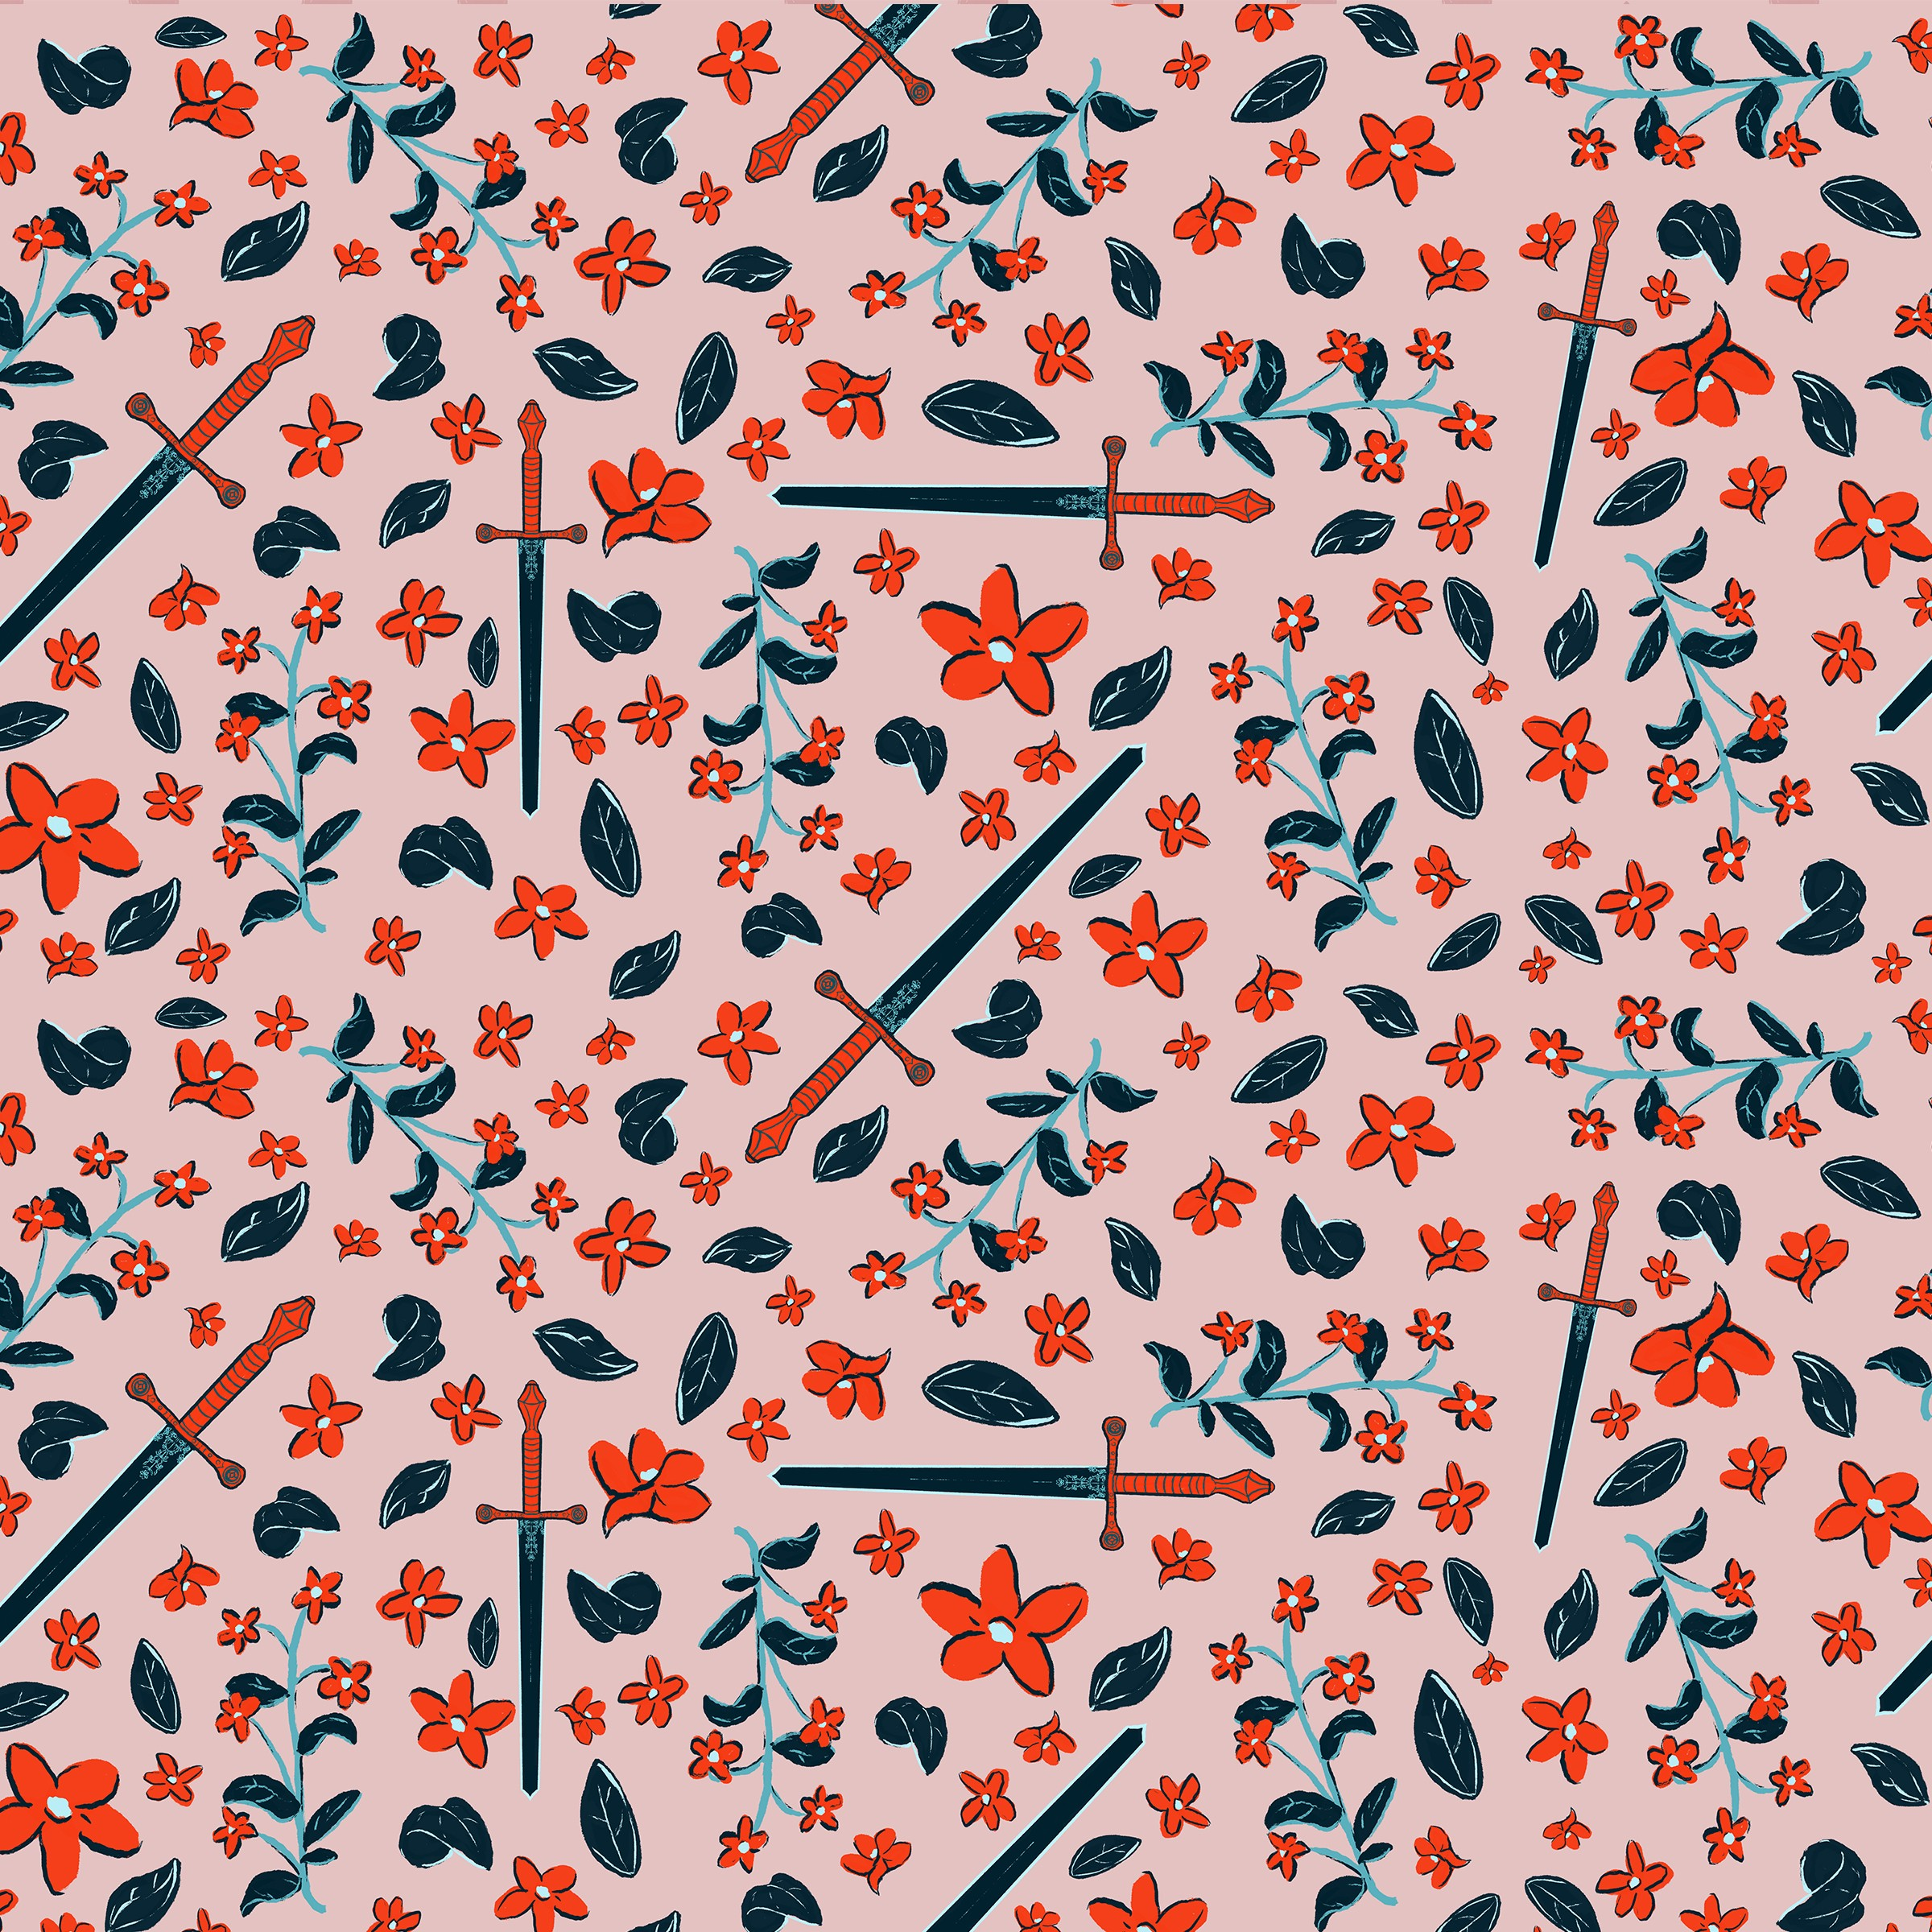 A red, pink, and blue pattern containing swords, leaves, and various flowers.